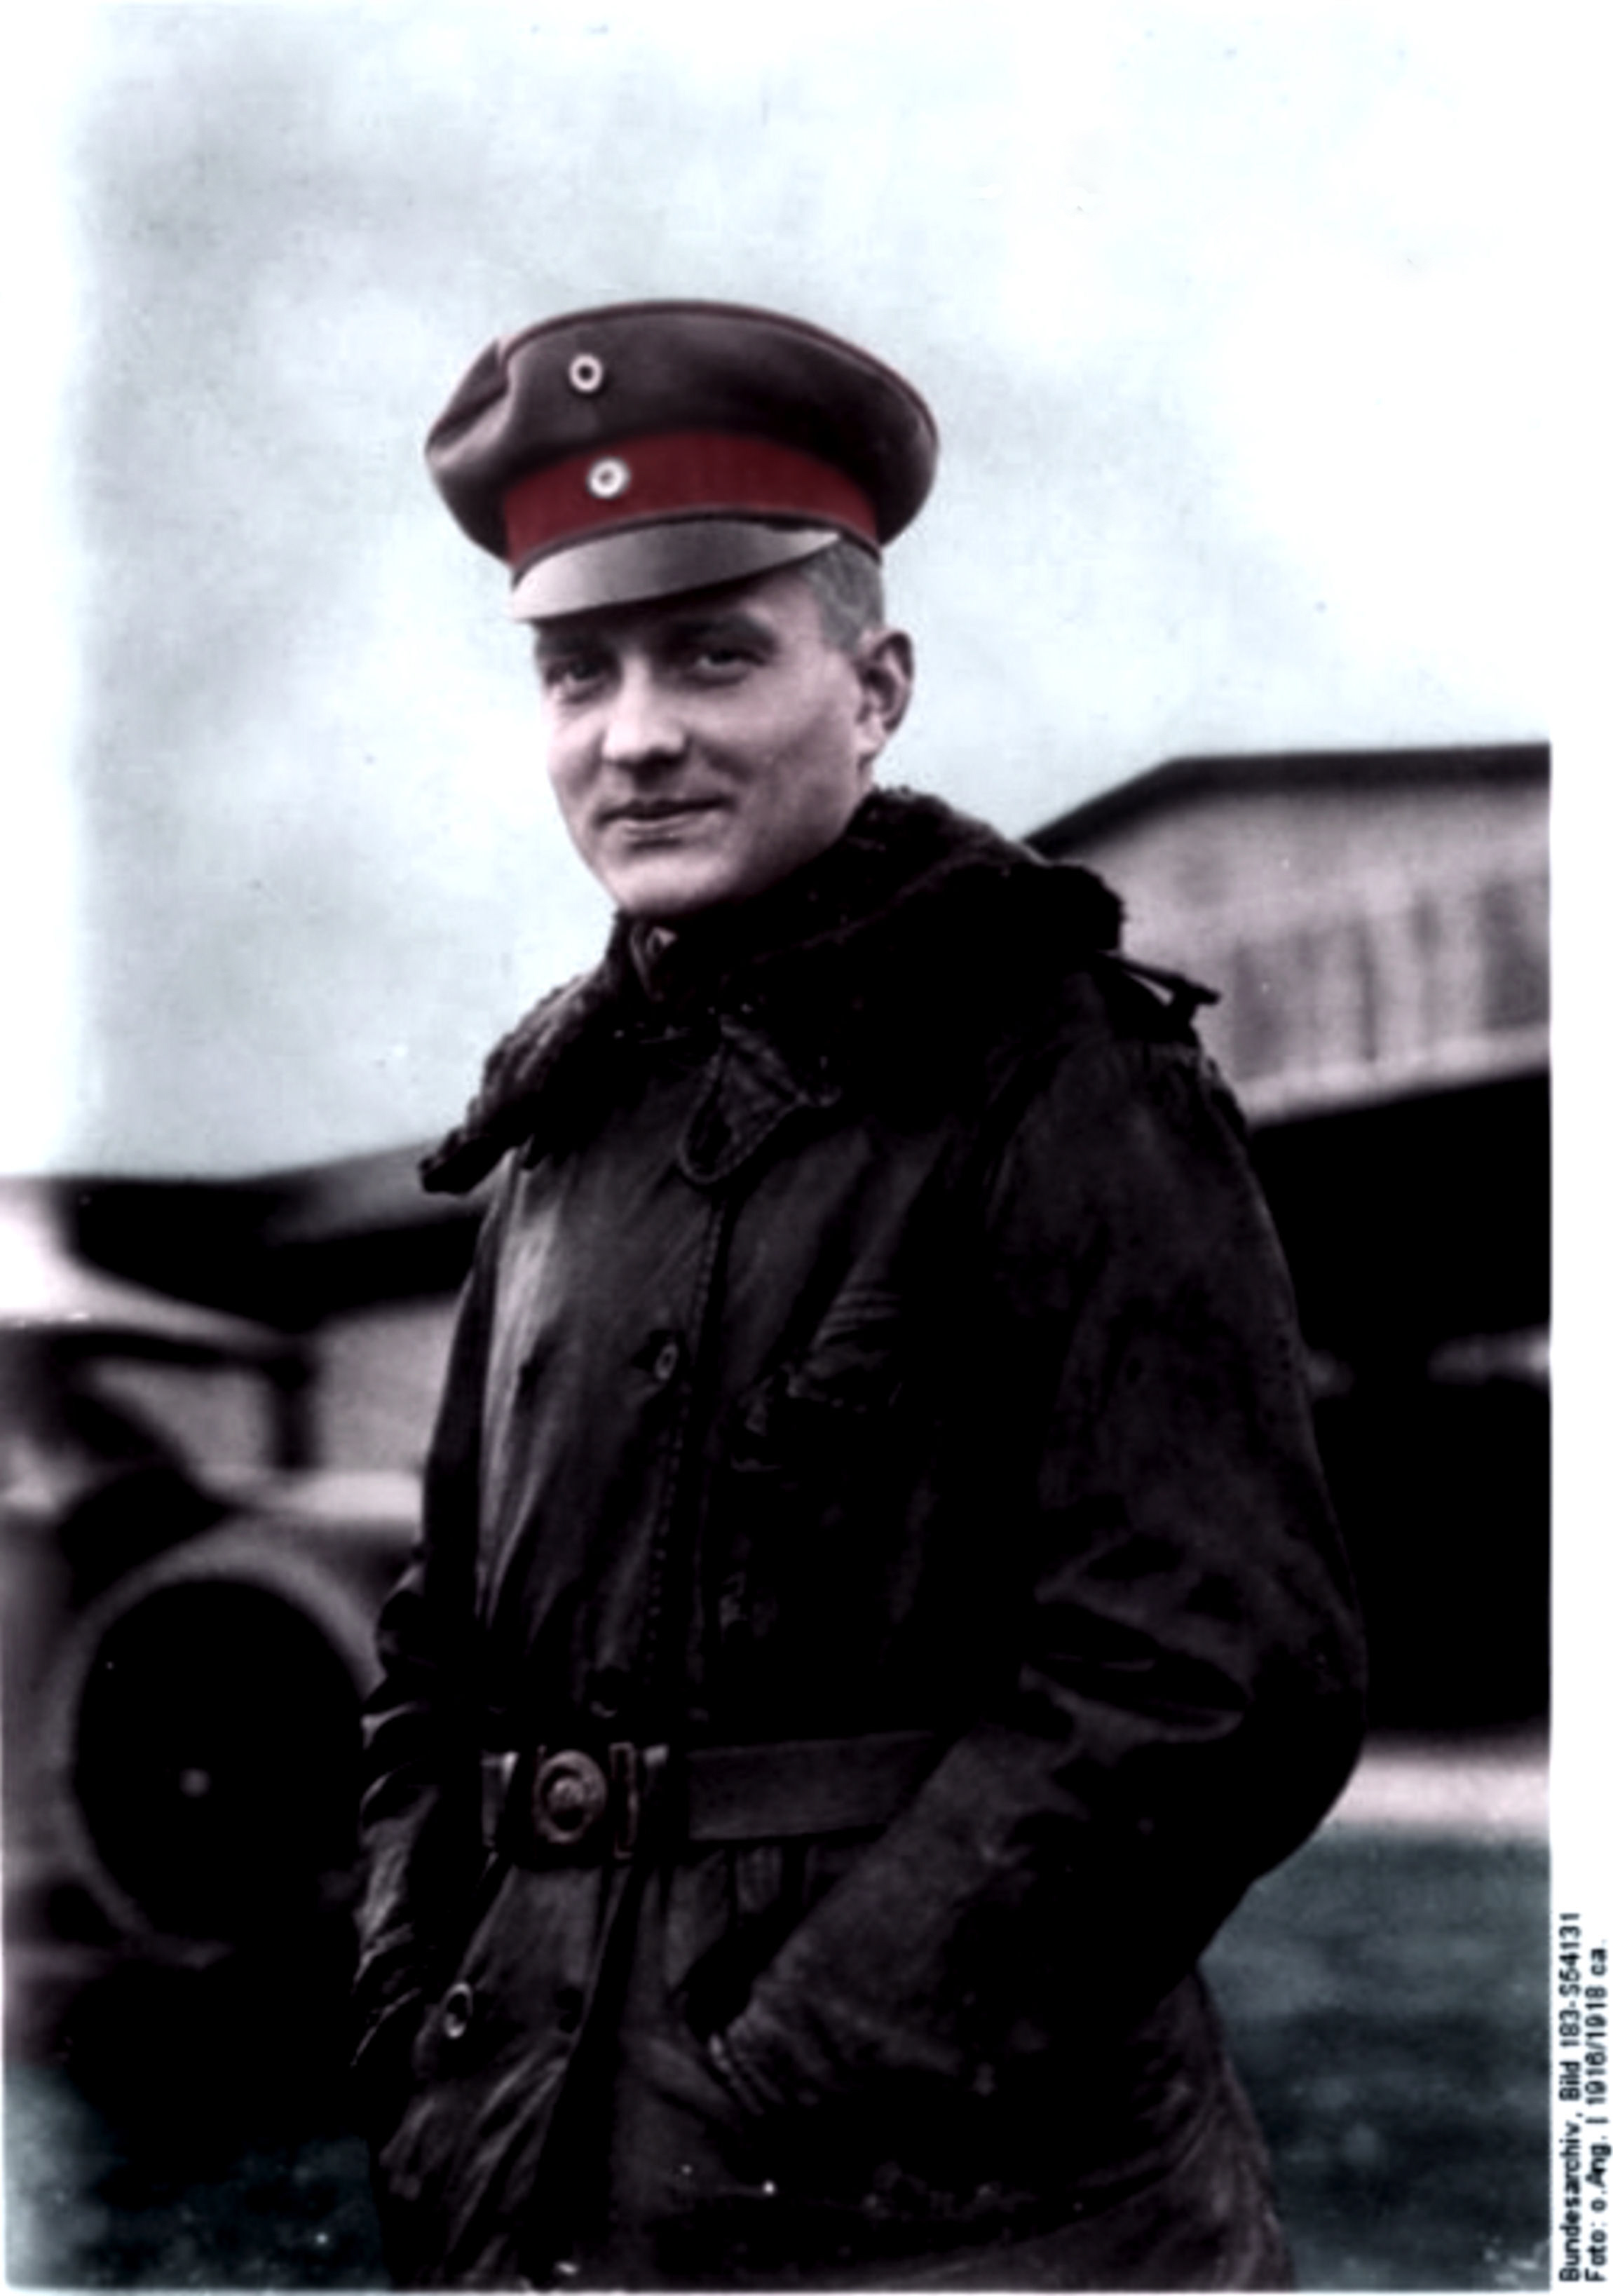 Manfred von Richthofen in front of a hangar, 1916-1918